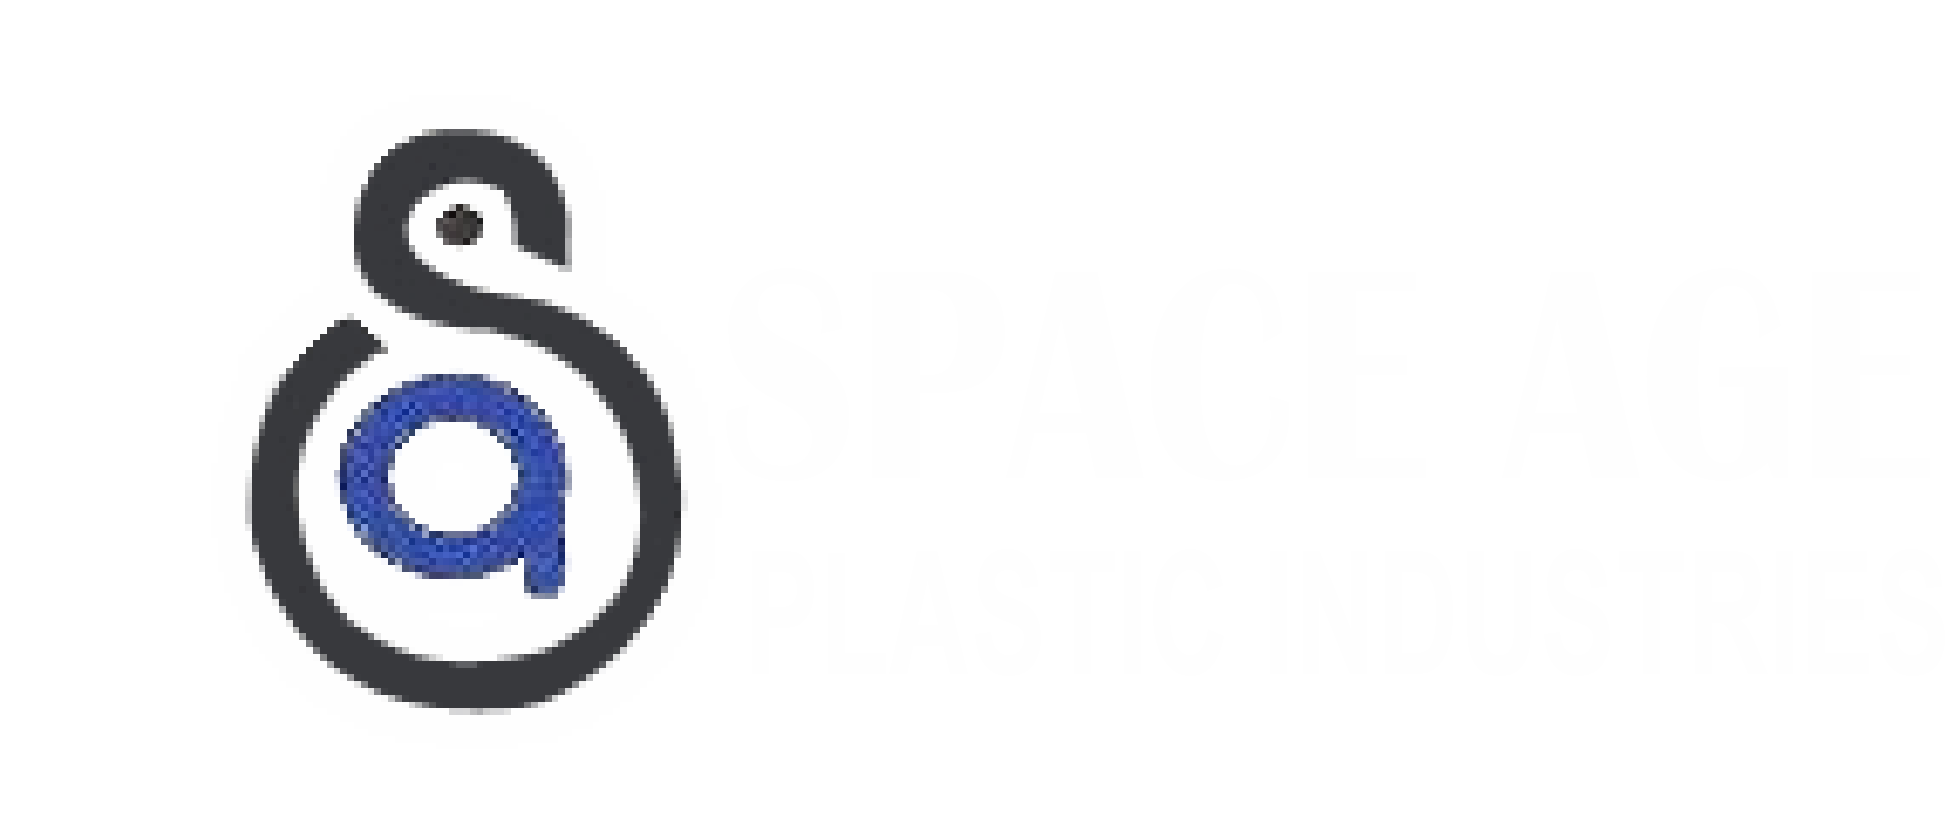 space-age-plastic-industry-logo